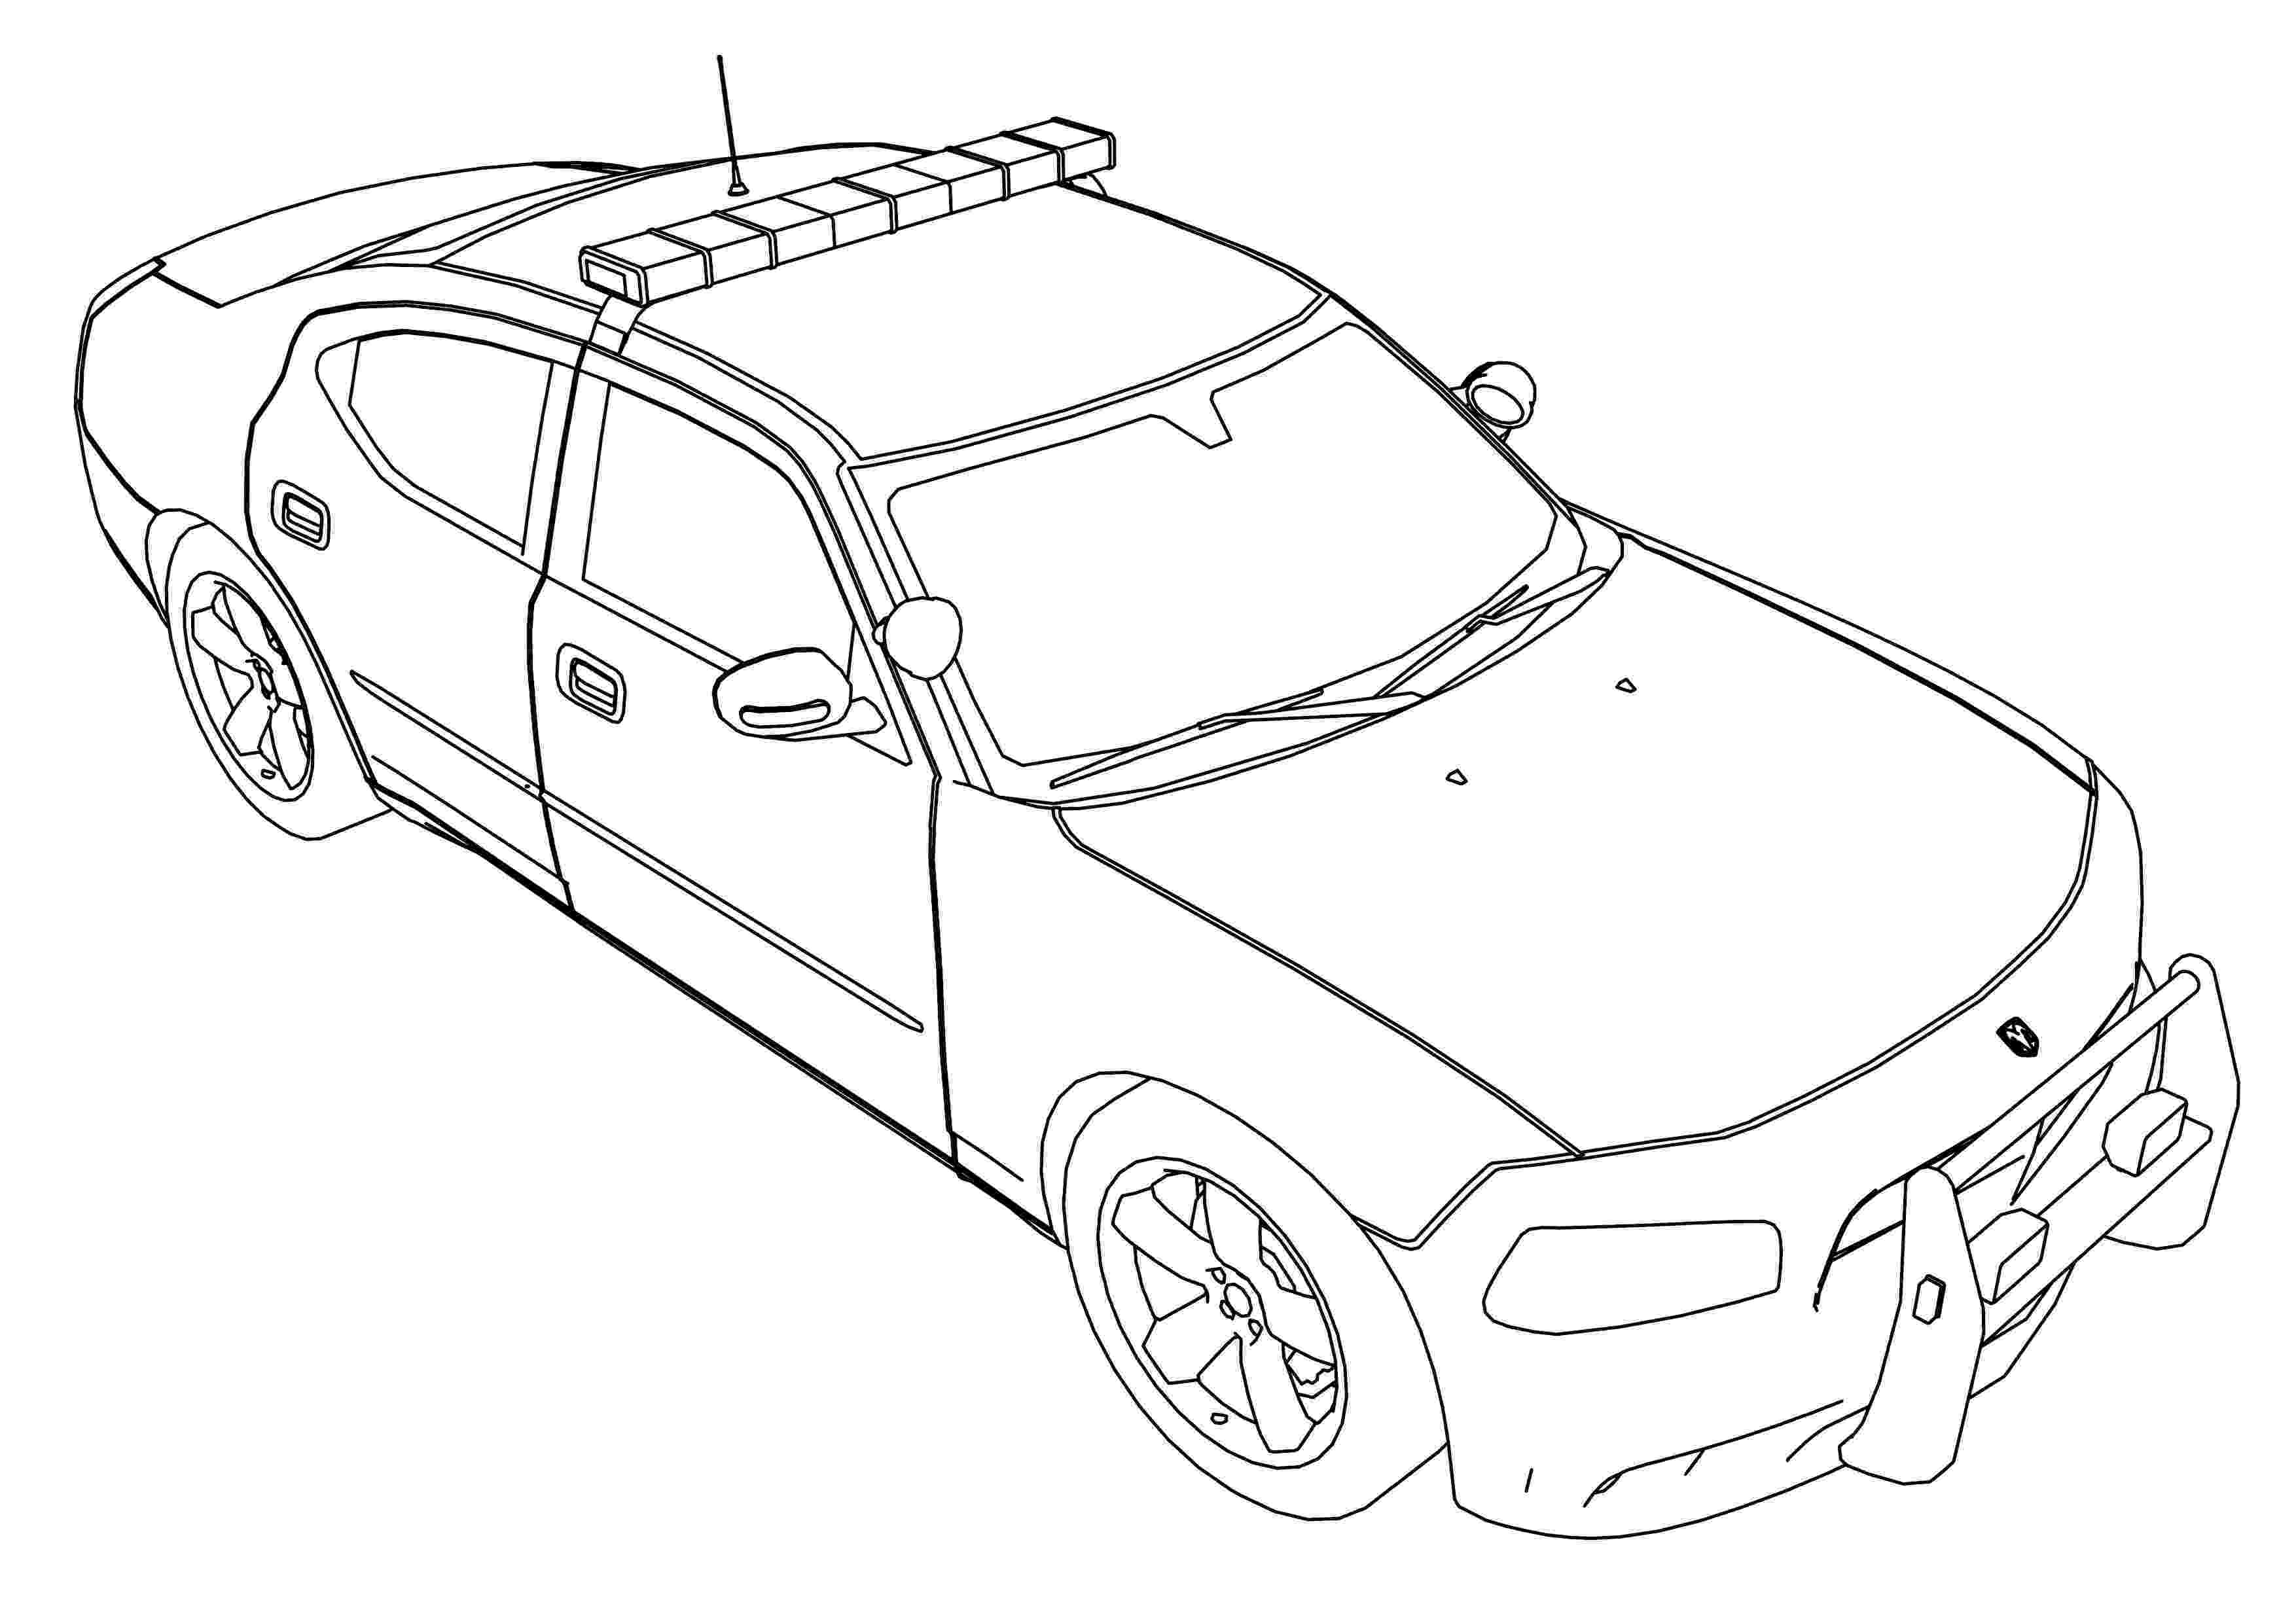 car coloring pictures police car coloring pages to download and print for free car coloring pictures